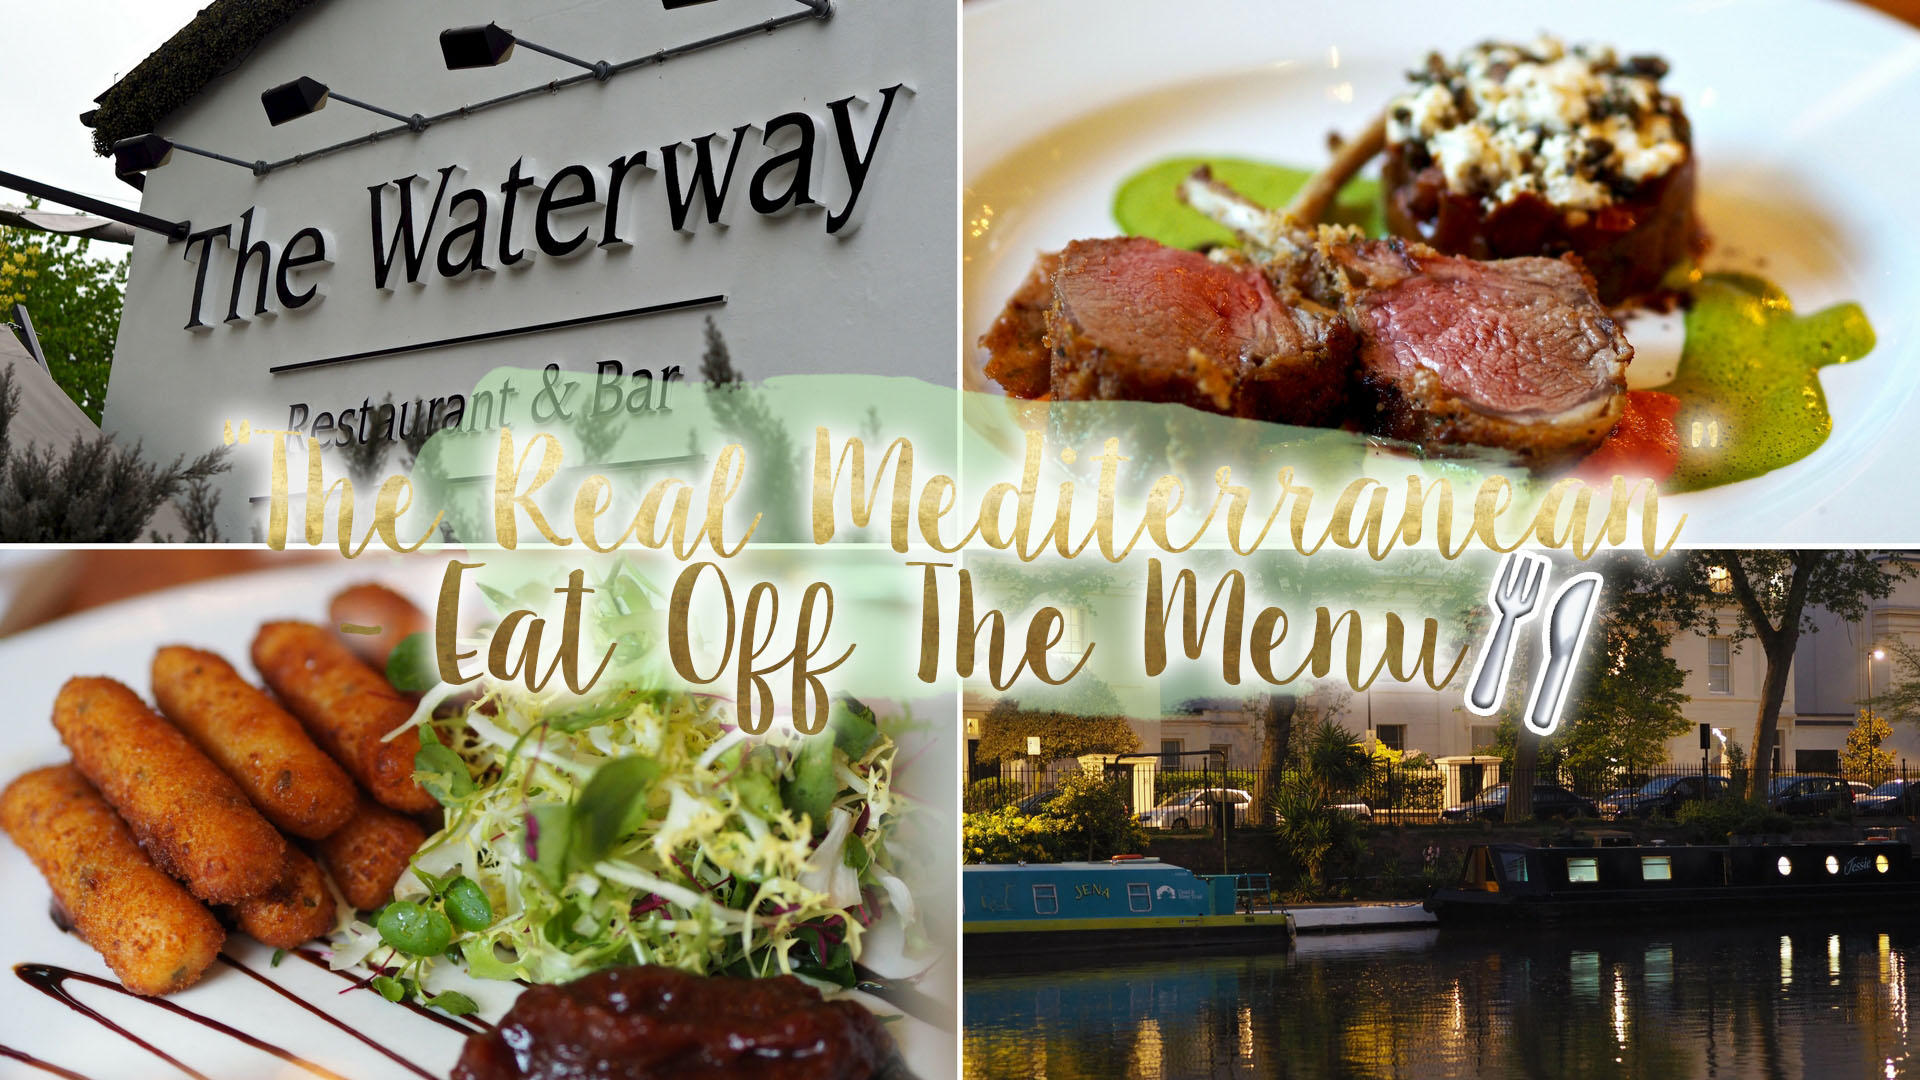 Eat Off The Menu - The Real Mediterranean, Maida Vale || Food & Drink